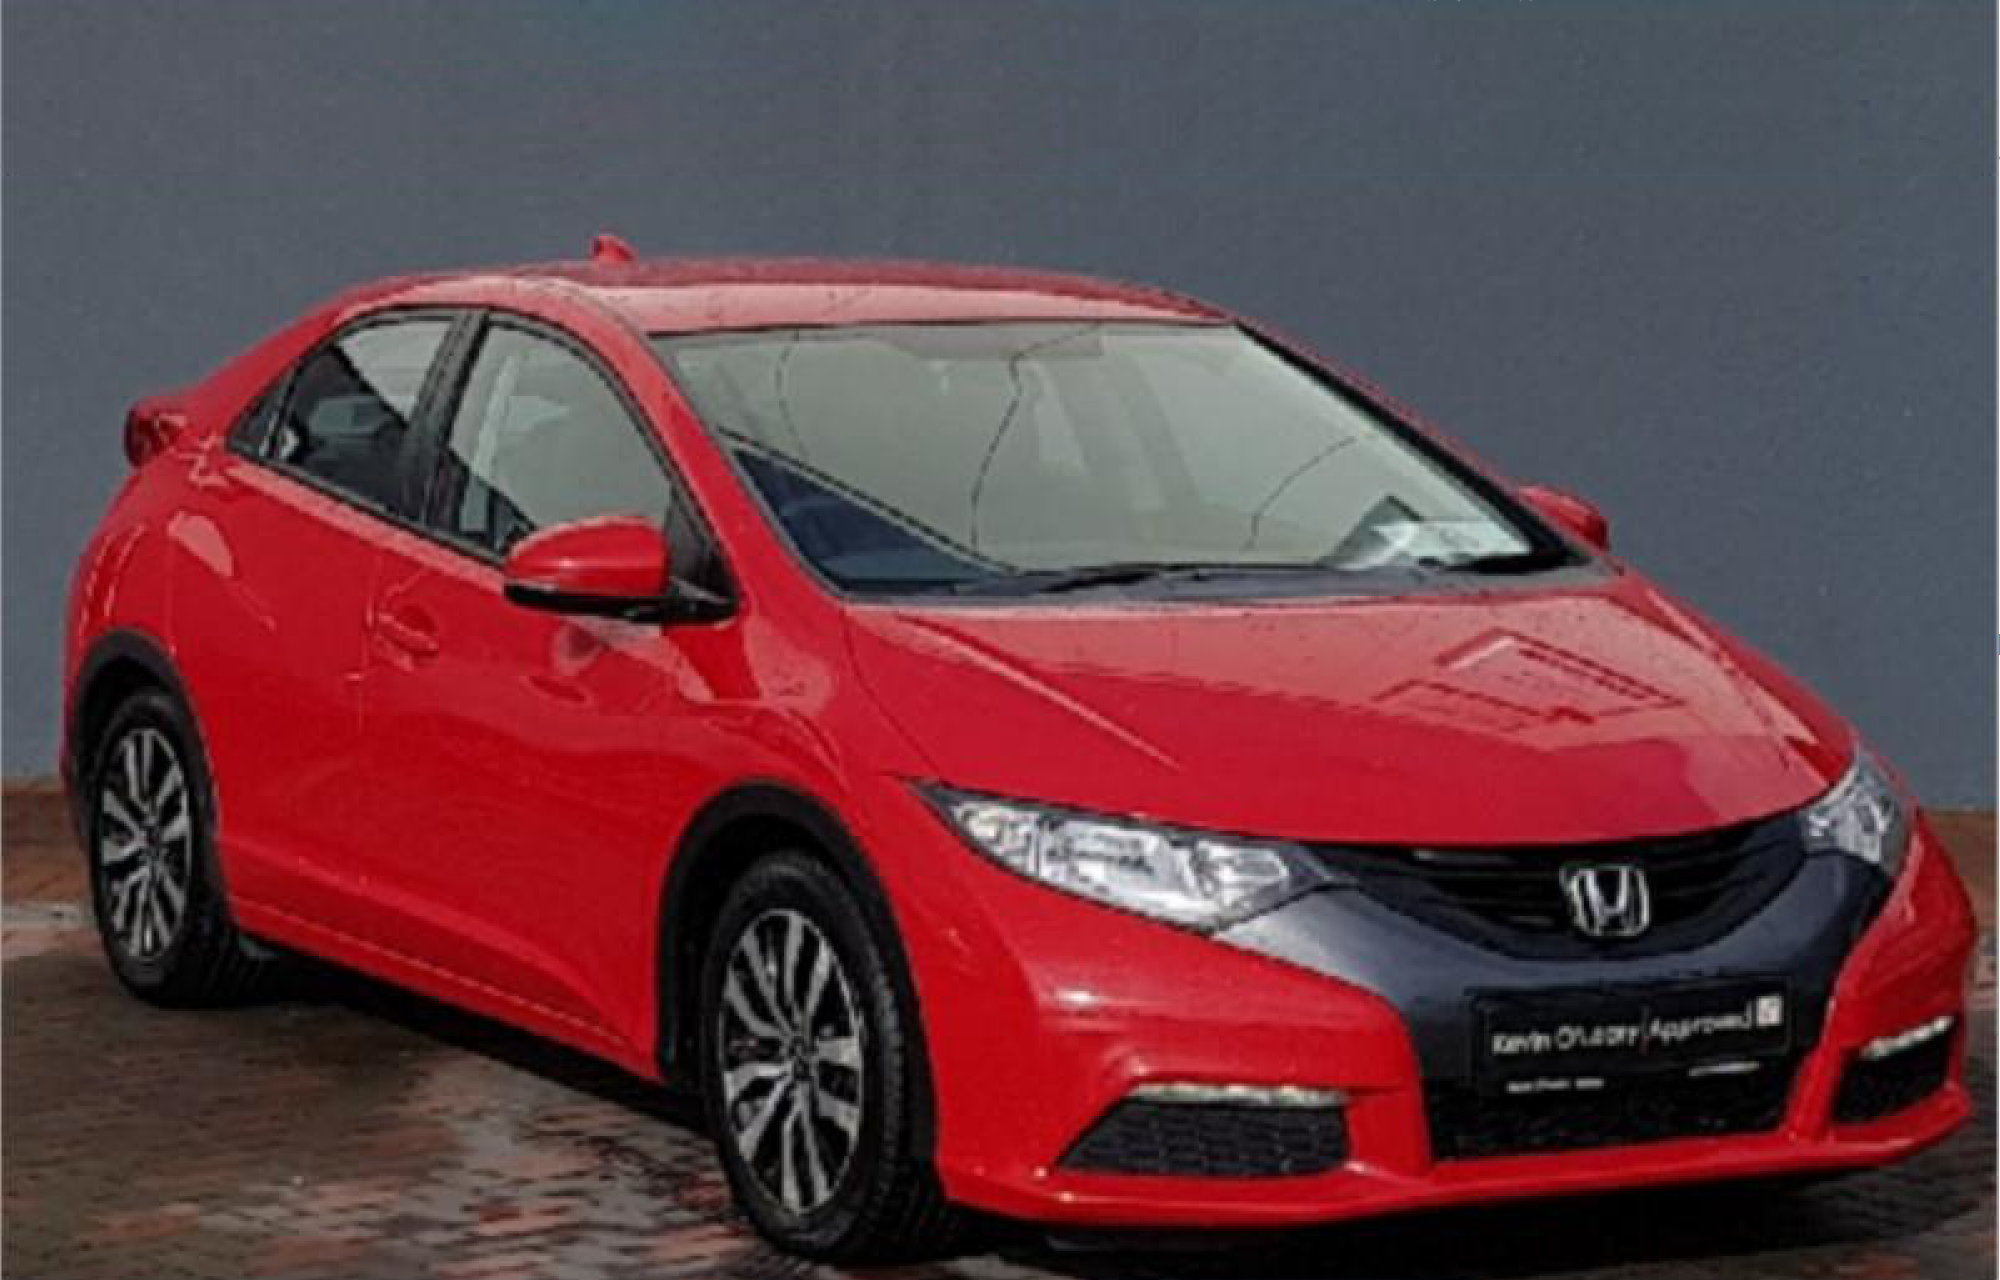 Honda of the Week: 2016 Civic 1.6 i-DTEC Hatchback available at Kevin O'Leary Honda Cork